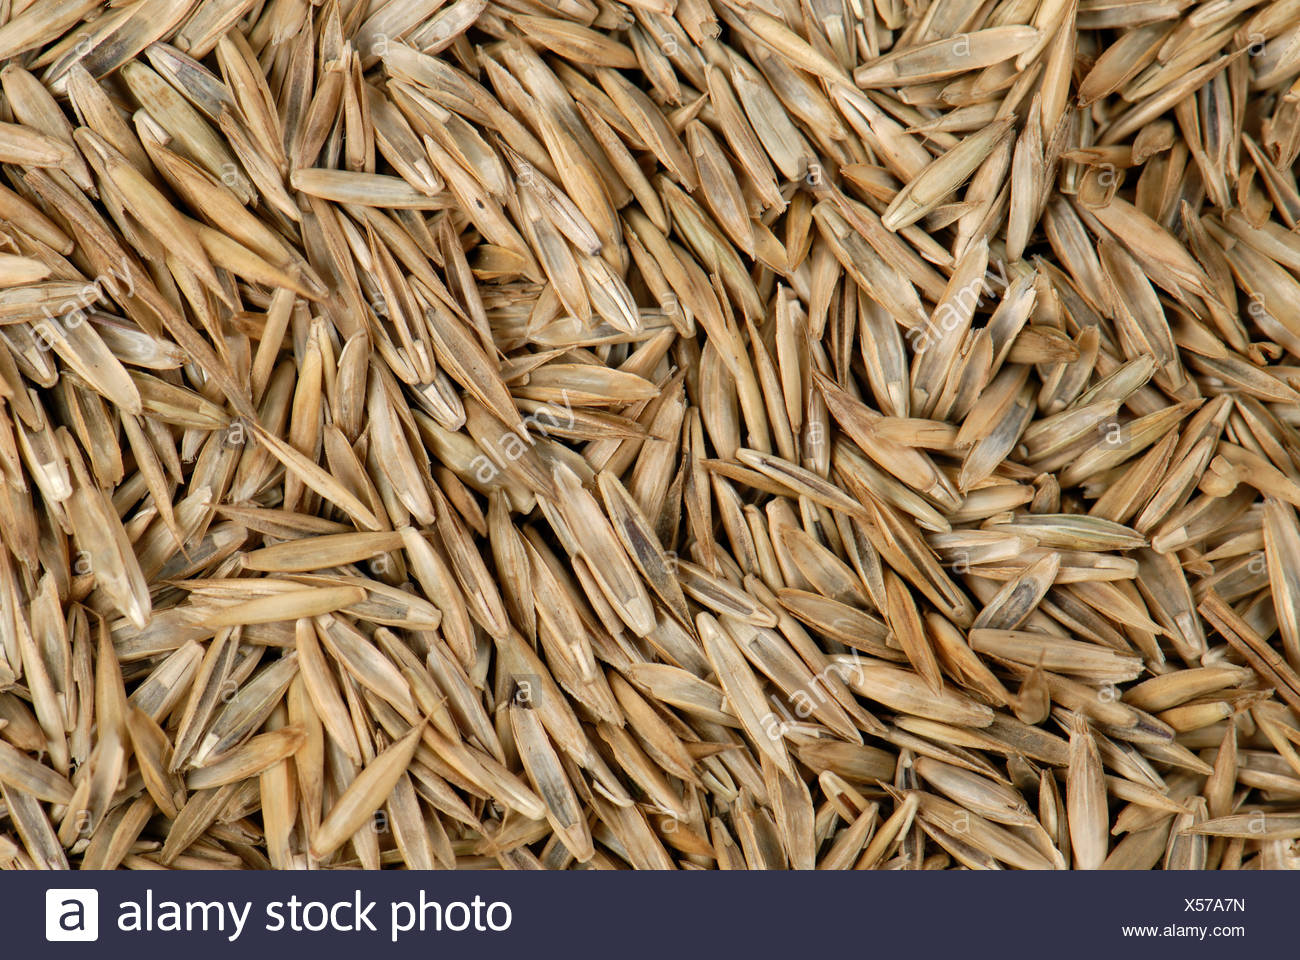 Lawn grass seed including ryegrass Lolium sp - Stock Image